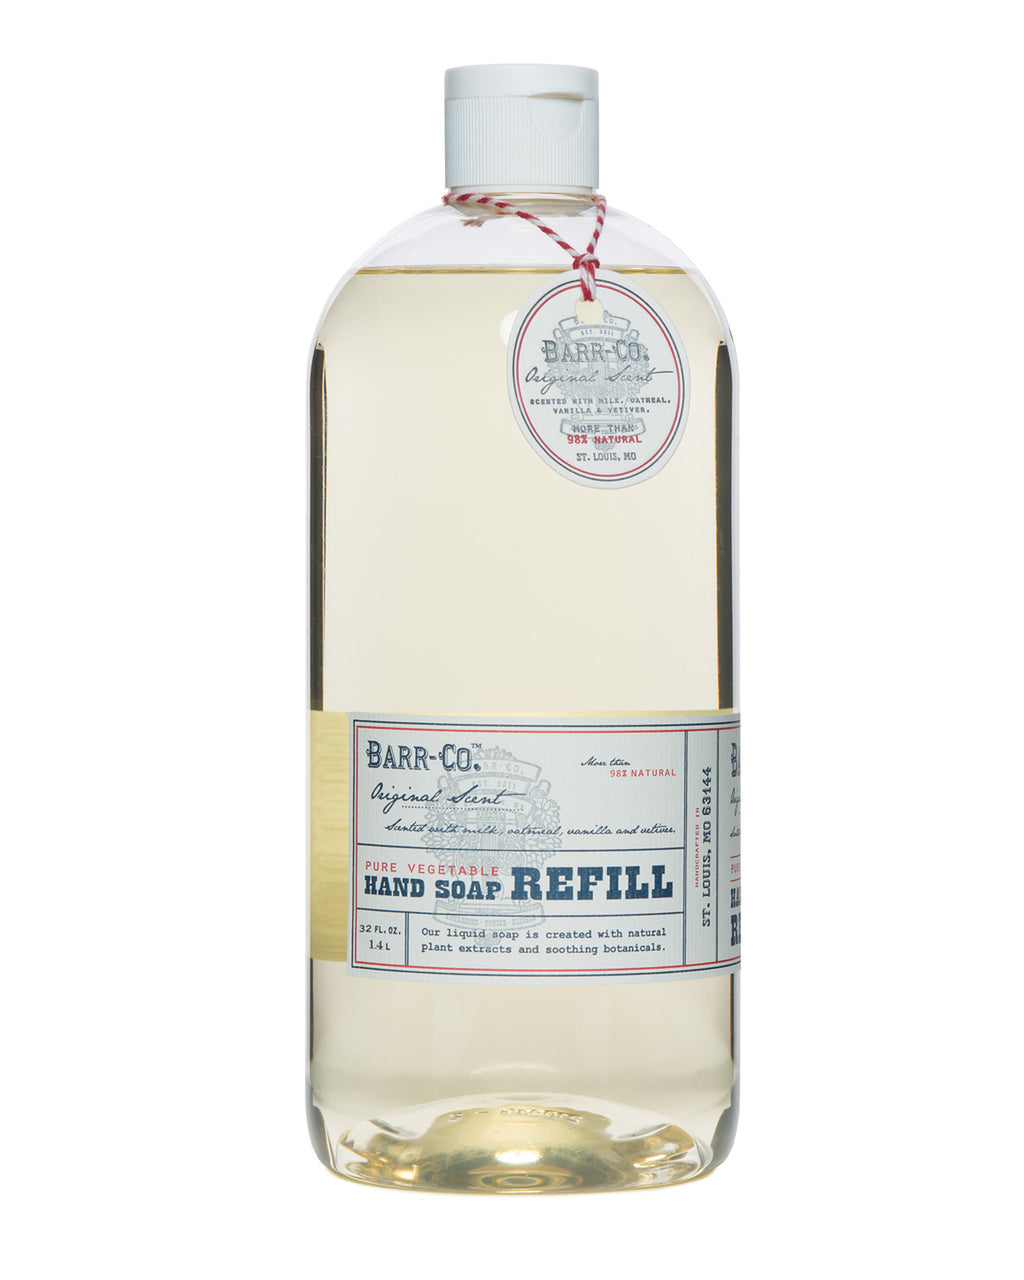 Barr-Co. Original Scent Liquid Soap Refill - Wanderlustre